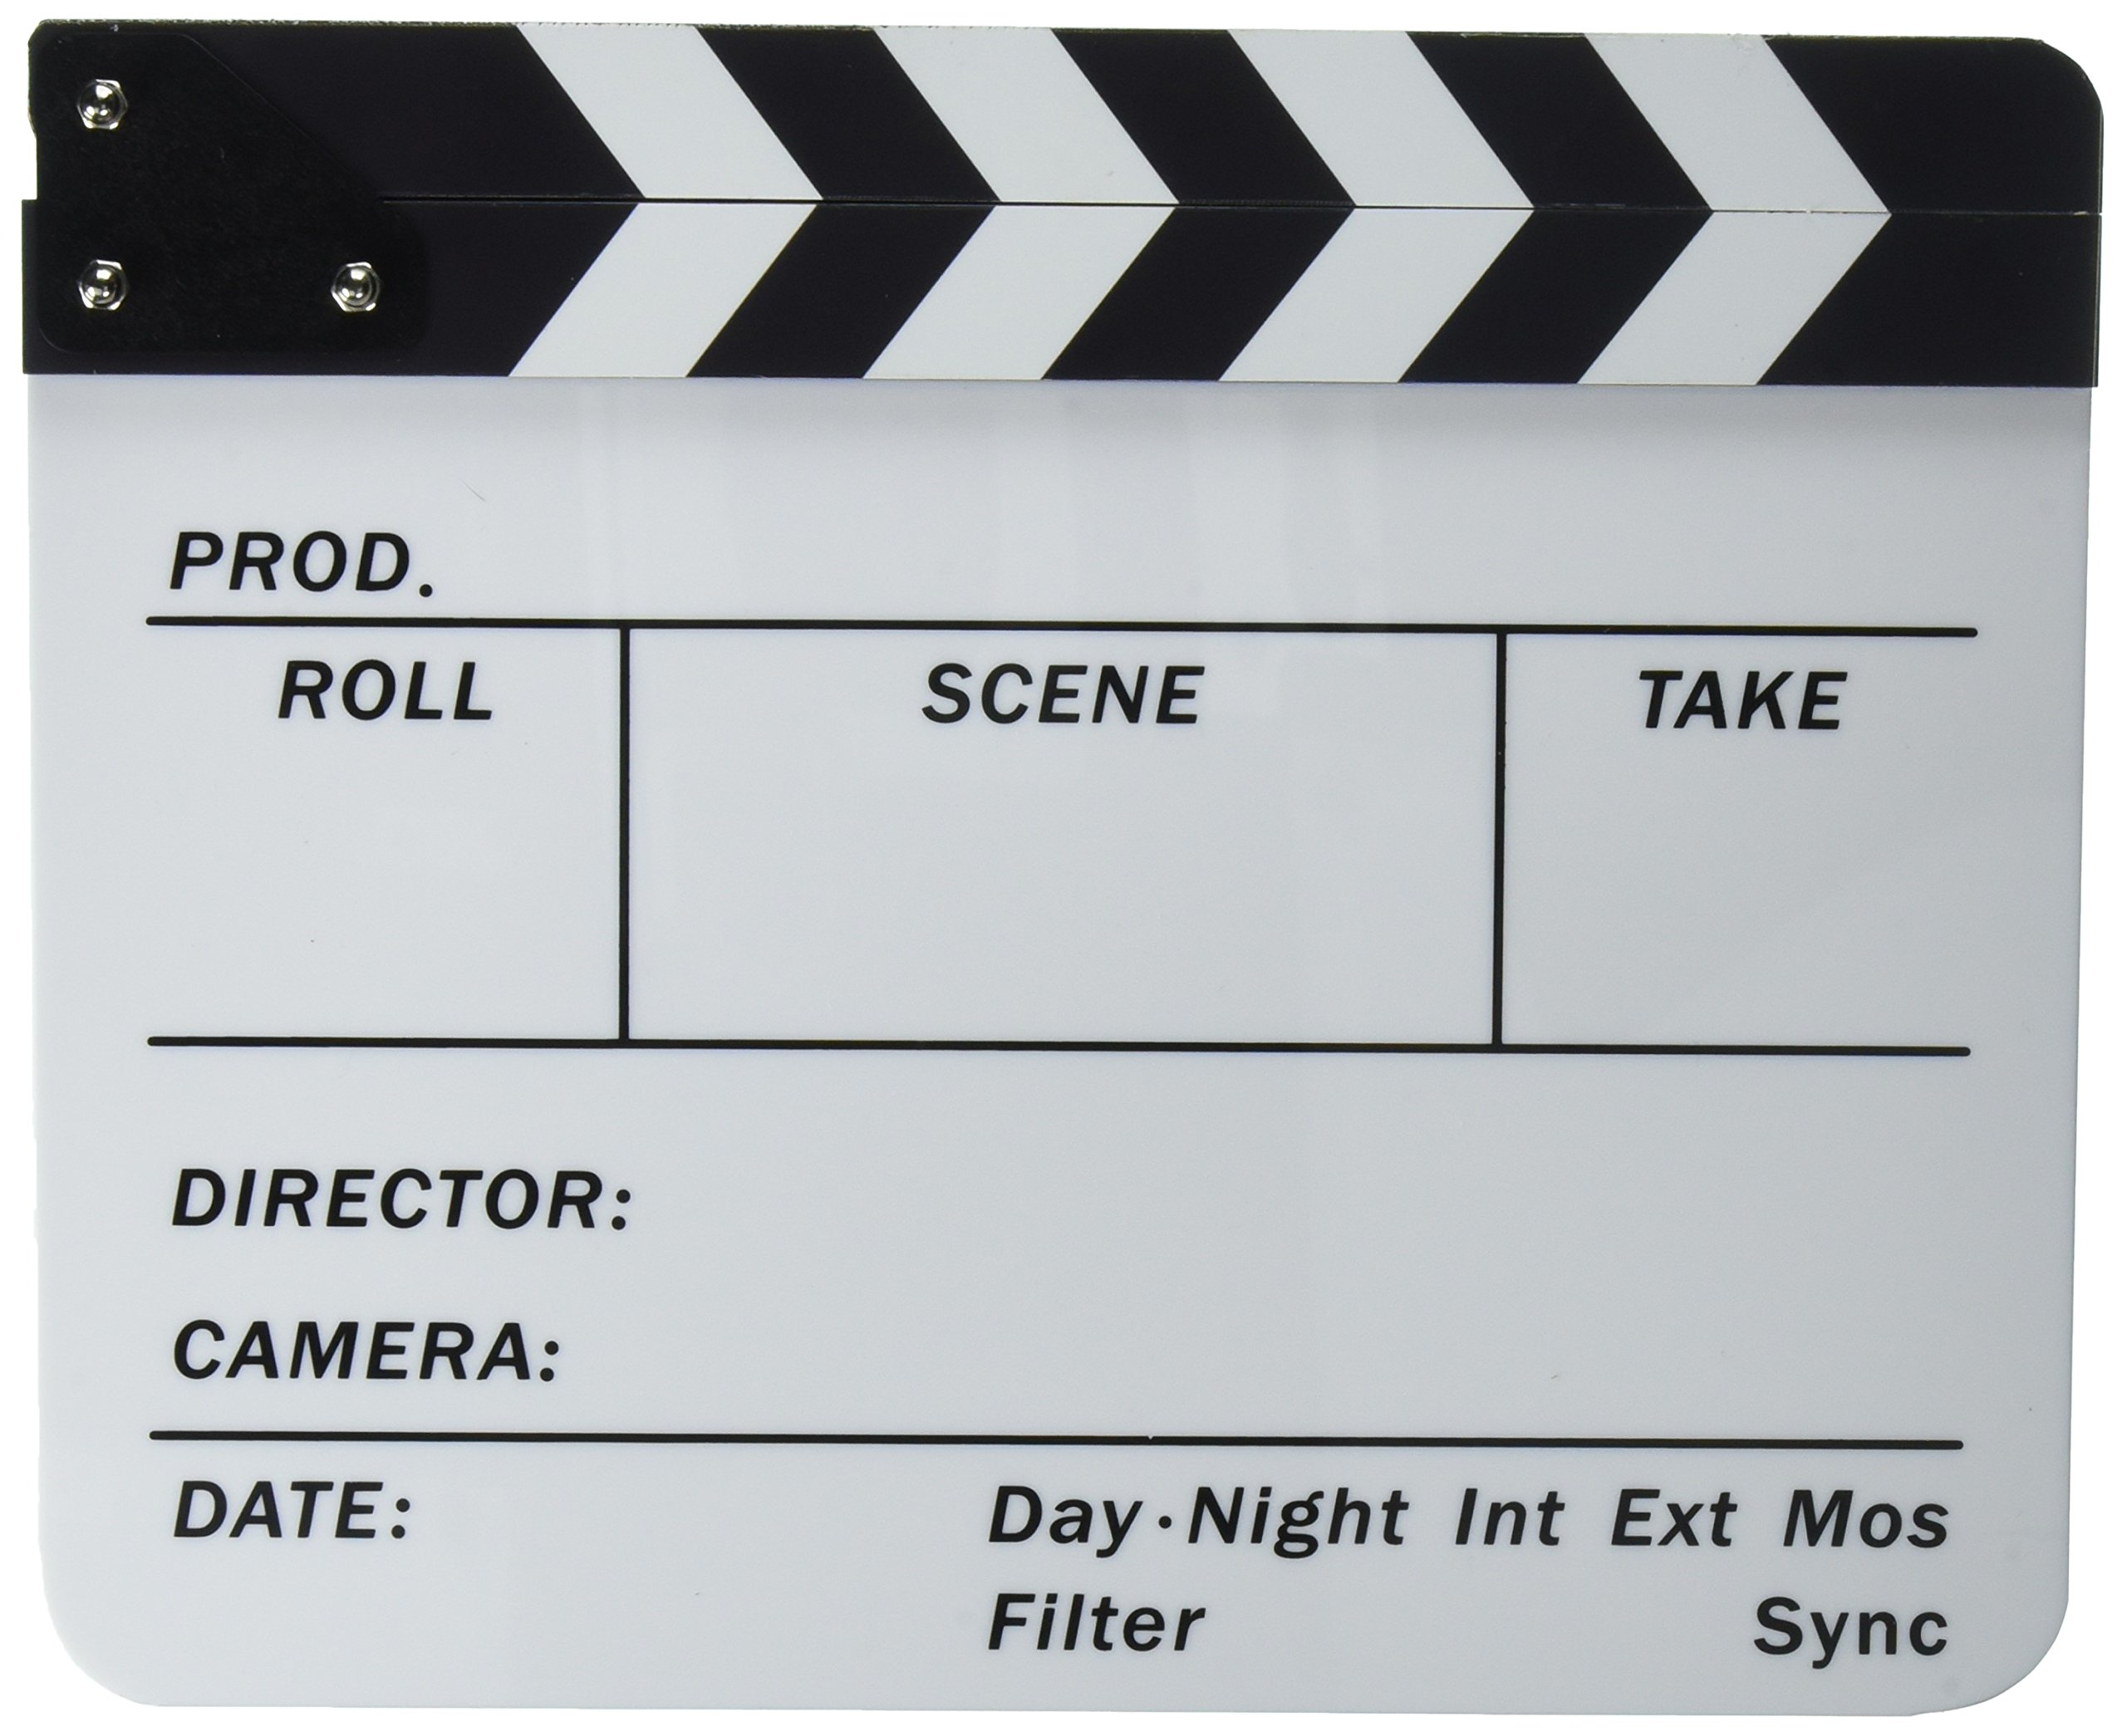 Neewer Acrylic Plastic 10x12''/25x30cm Dry Erase Director's Film Clapboard Cut Action Scene Clapper Board Slate with White/Black Sticks by Neewer